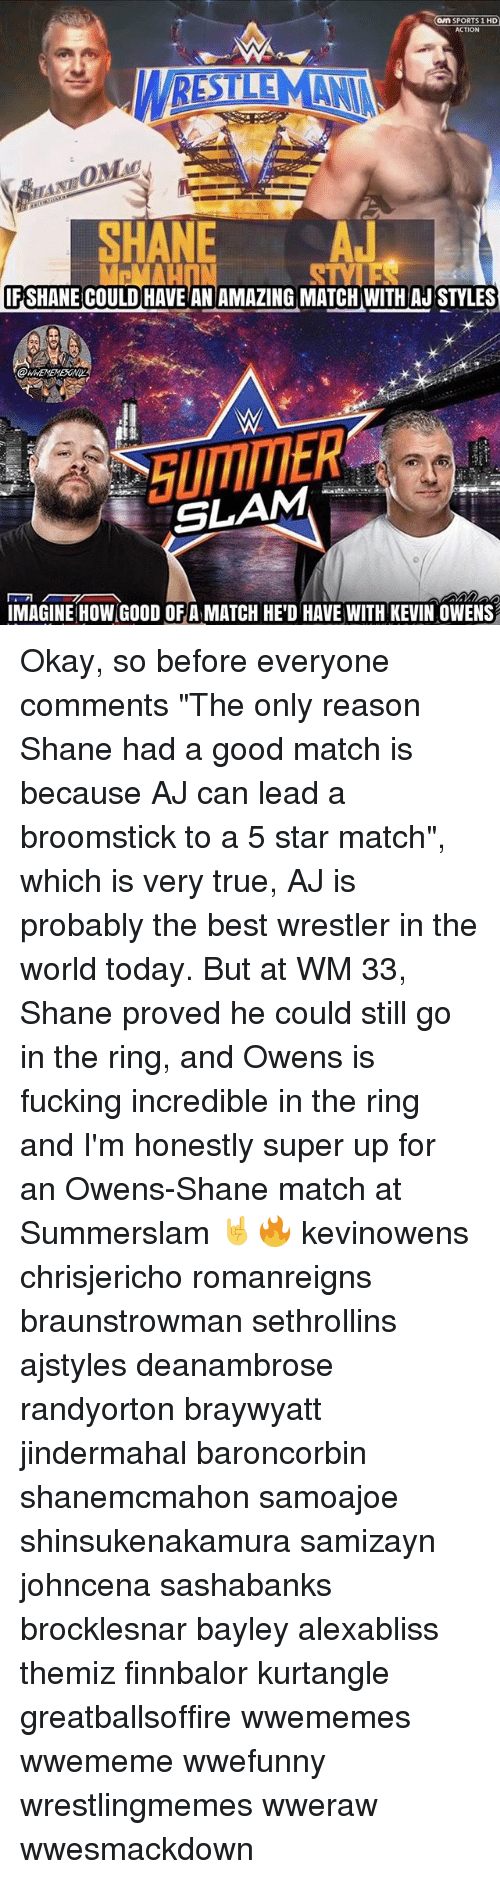 """Broomstick, Fucking, and Memes: on SPORTS 1 HD  ACTION  SNE A  HA  FSHANE COULD HAVE ANAMAZING MATCH WITH AJ STYLES  SLAM-' 개  IMAGINE HOW GOOD OFA MATCH HE'D HAVE WITH KEVIN OWENS Okay, so before everyone comments """"The only reason Shane had a good match is because AJ can lead a broomstick to a 5 star match"""", which is very true, AJ is probably the best wrestler in the world today. But at WM 33, Shane proved he could still go in the ring, and Owens is fucking incredible in the ring and I'm honestly super up for an Owens-Shane match at Summerslam 🤘🔥 kevinowens chrisjericho romanreigns braunstrowman sethrollins ajstyles deanambrose randyorton braywyatt jindermahal baroncorbin shanemcmahon samoajoe shinsukenakamura samizayn johncena sashabanks brocklesnar bayley alexabliss themiz finnbalor kurtangle greatballsoffire wwememes wwememe wwefunny wrestlingmemes wweraw wwesmackdown"""